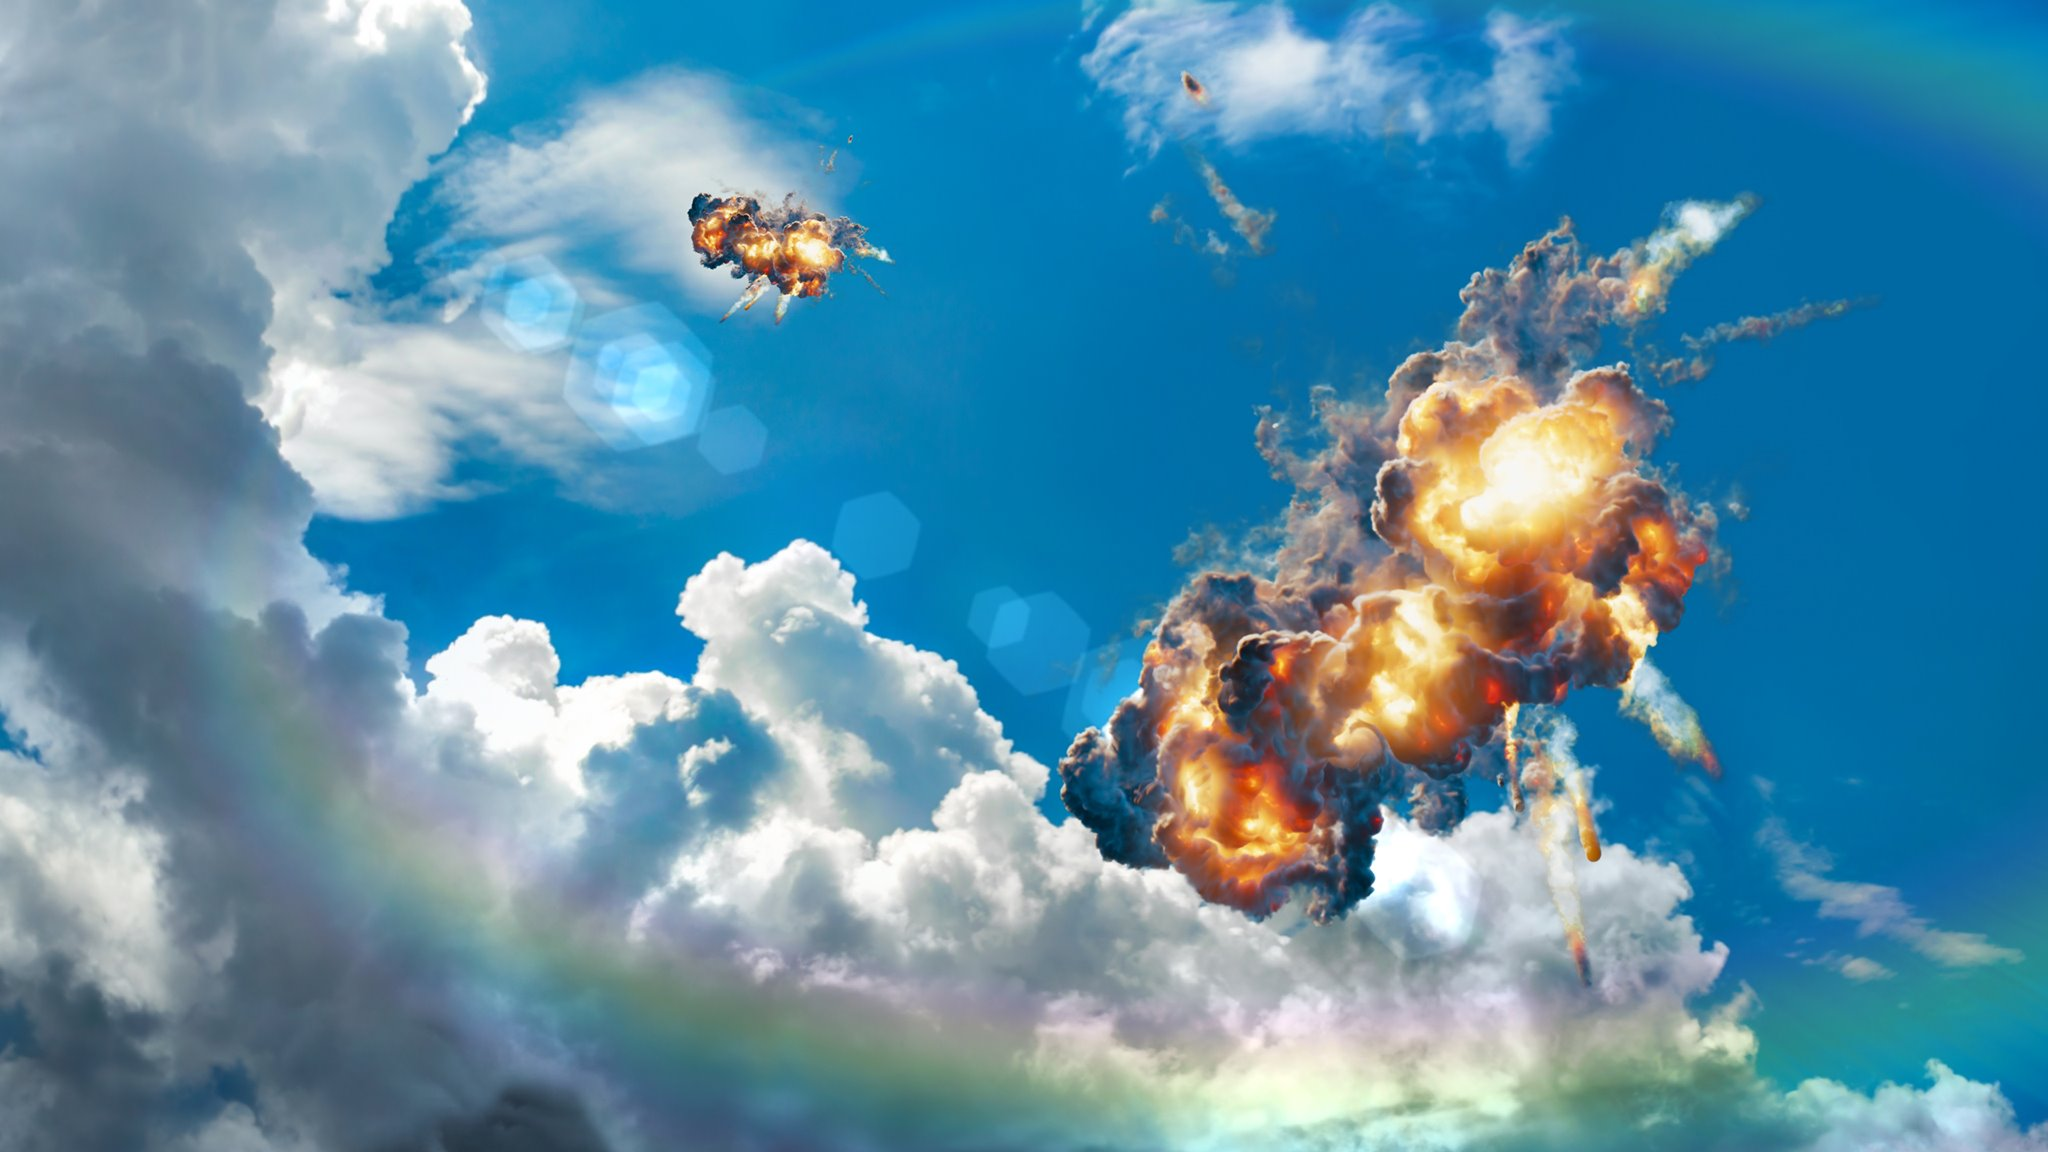 Sky Explosion - EXR Sequence UHD